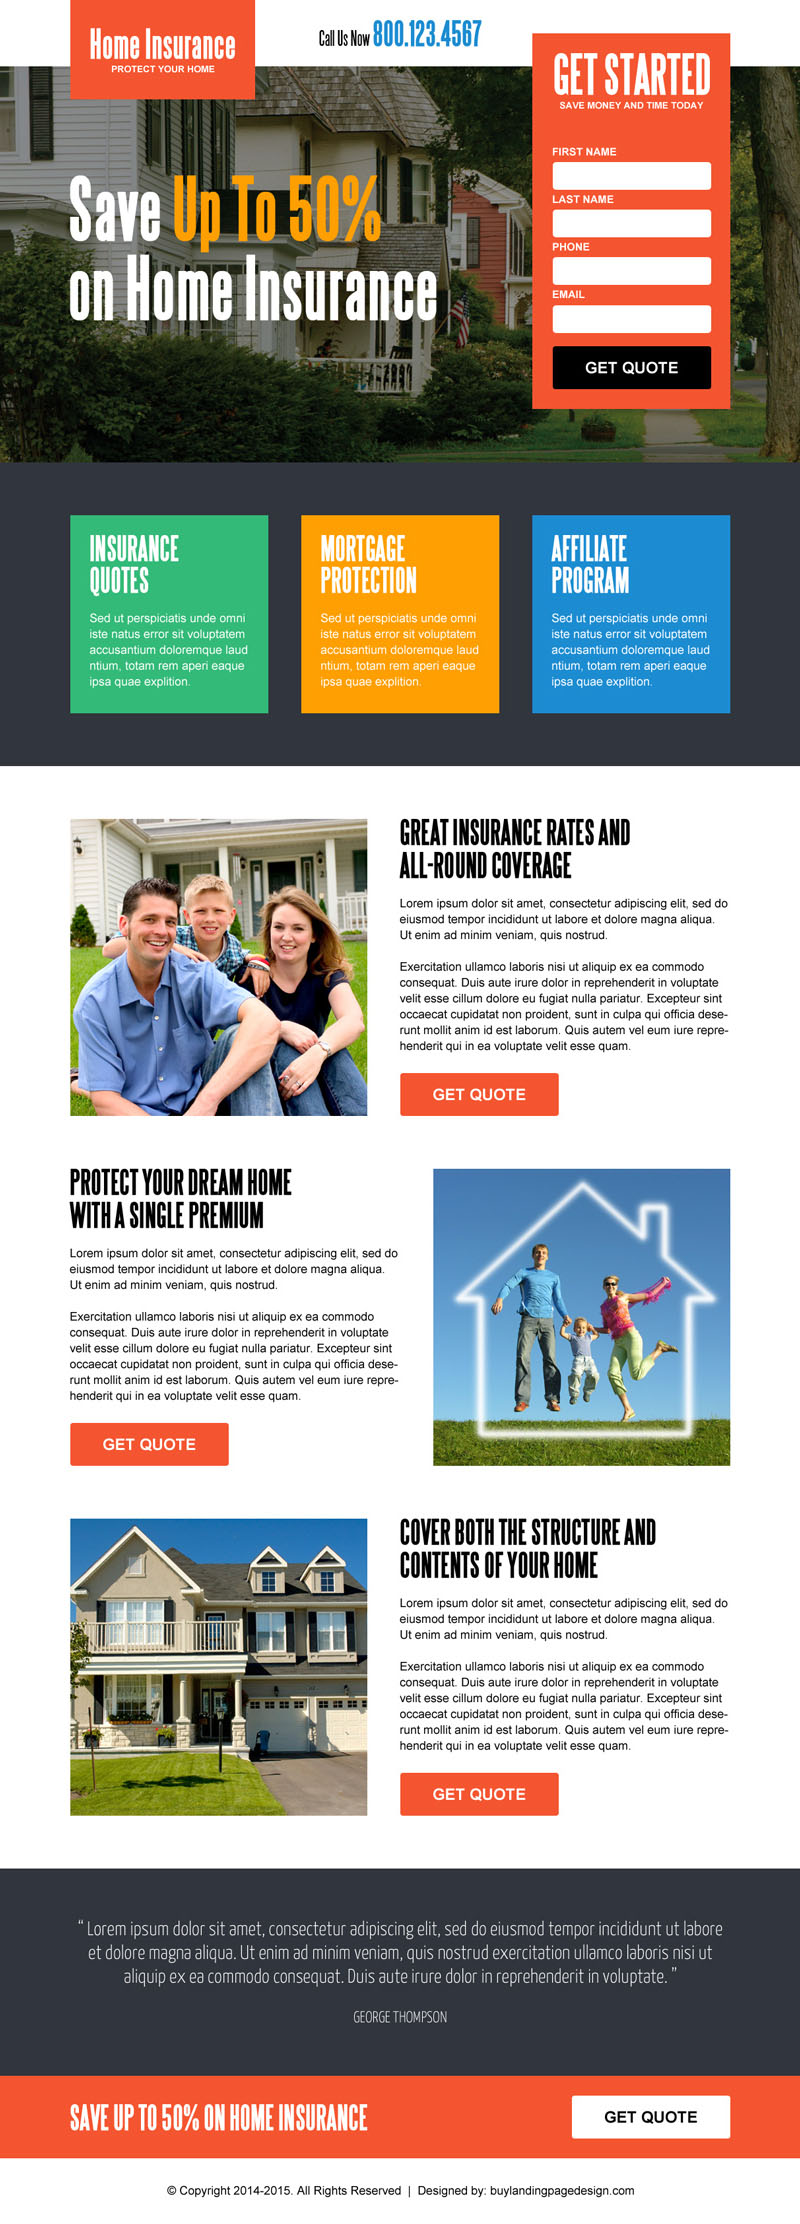 save-money-on-home-insurance-lead-capture-converting-landing-page-design-templates-024